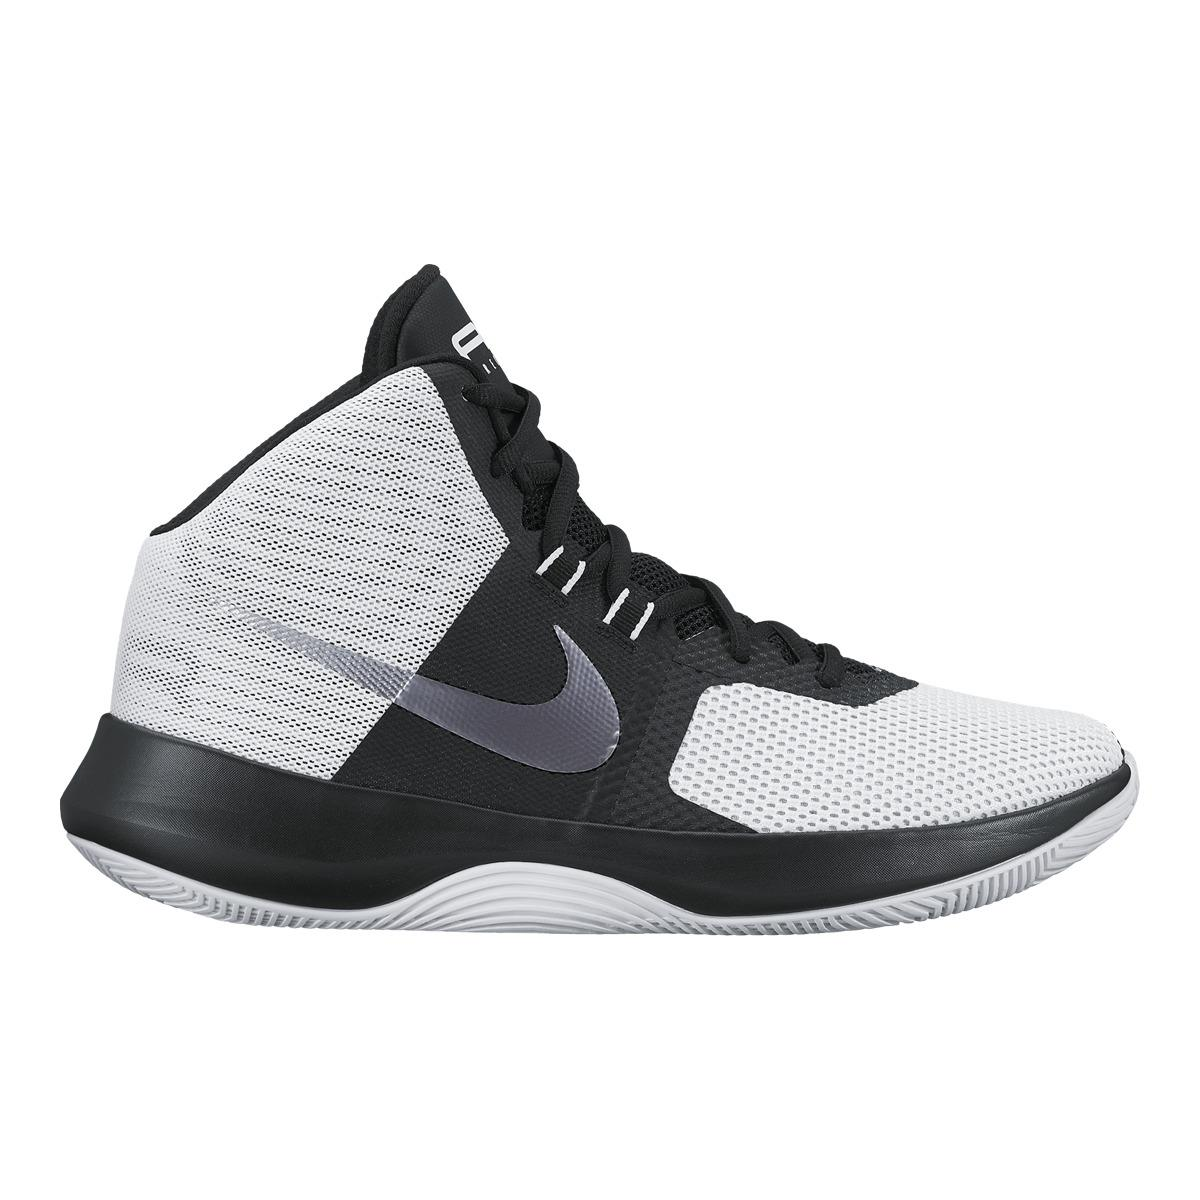 new styles 86c1b 58d36 Nike Air Precision Basketball Boots in Black for Men - Lyst